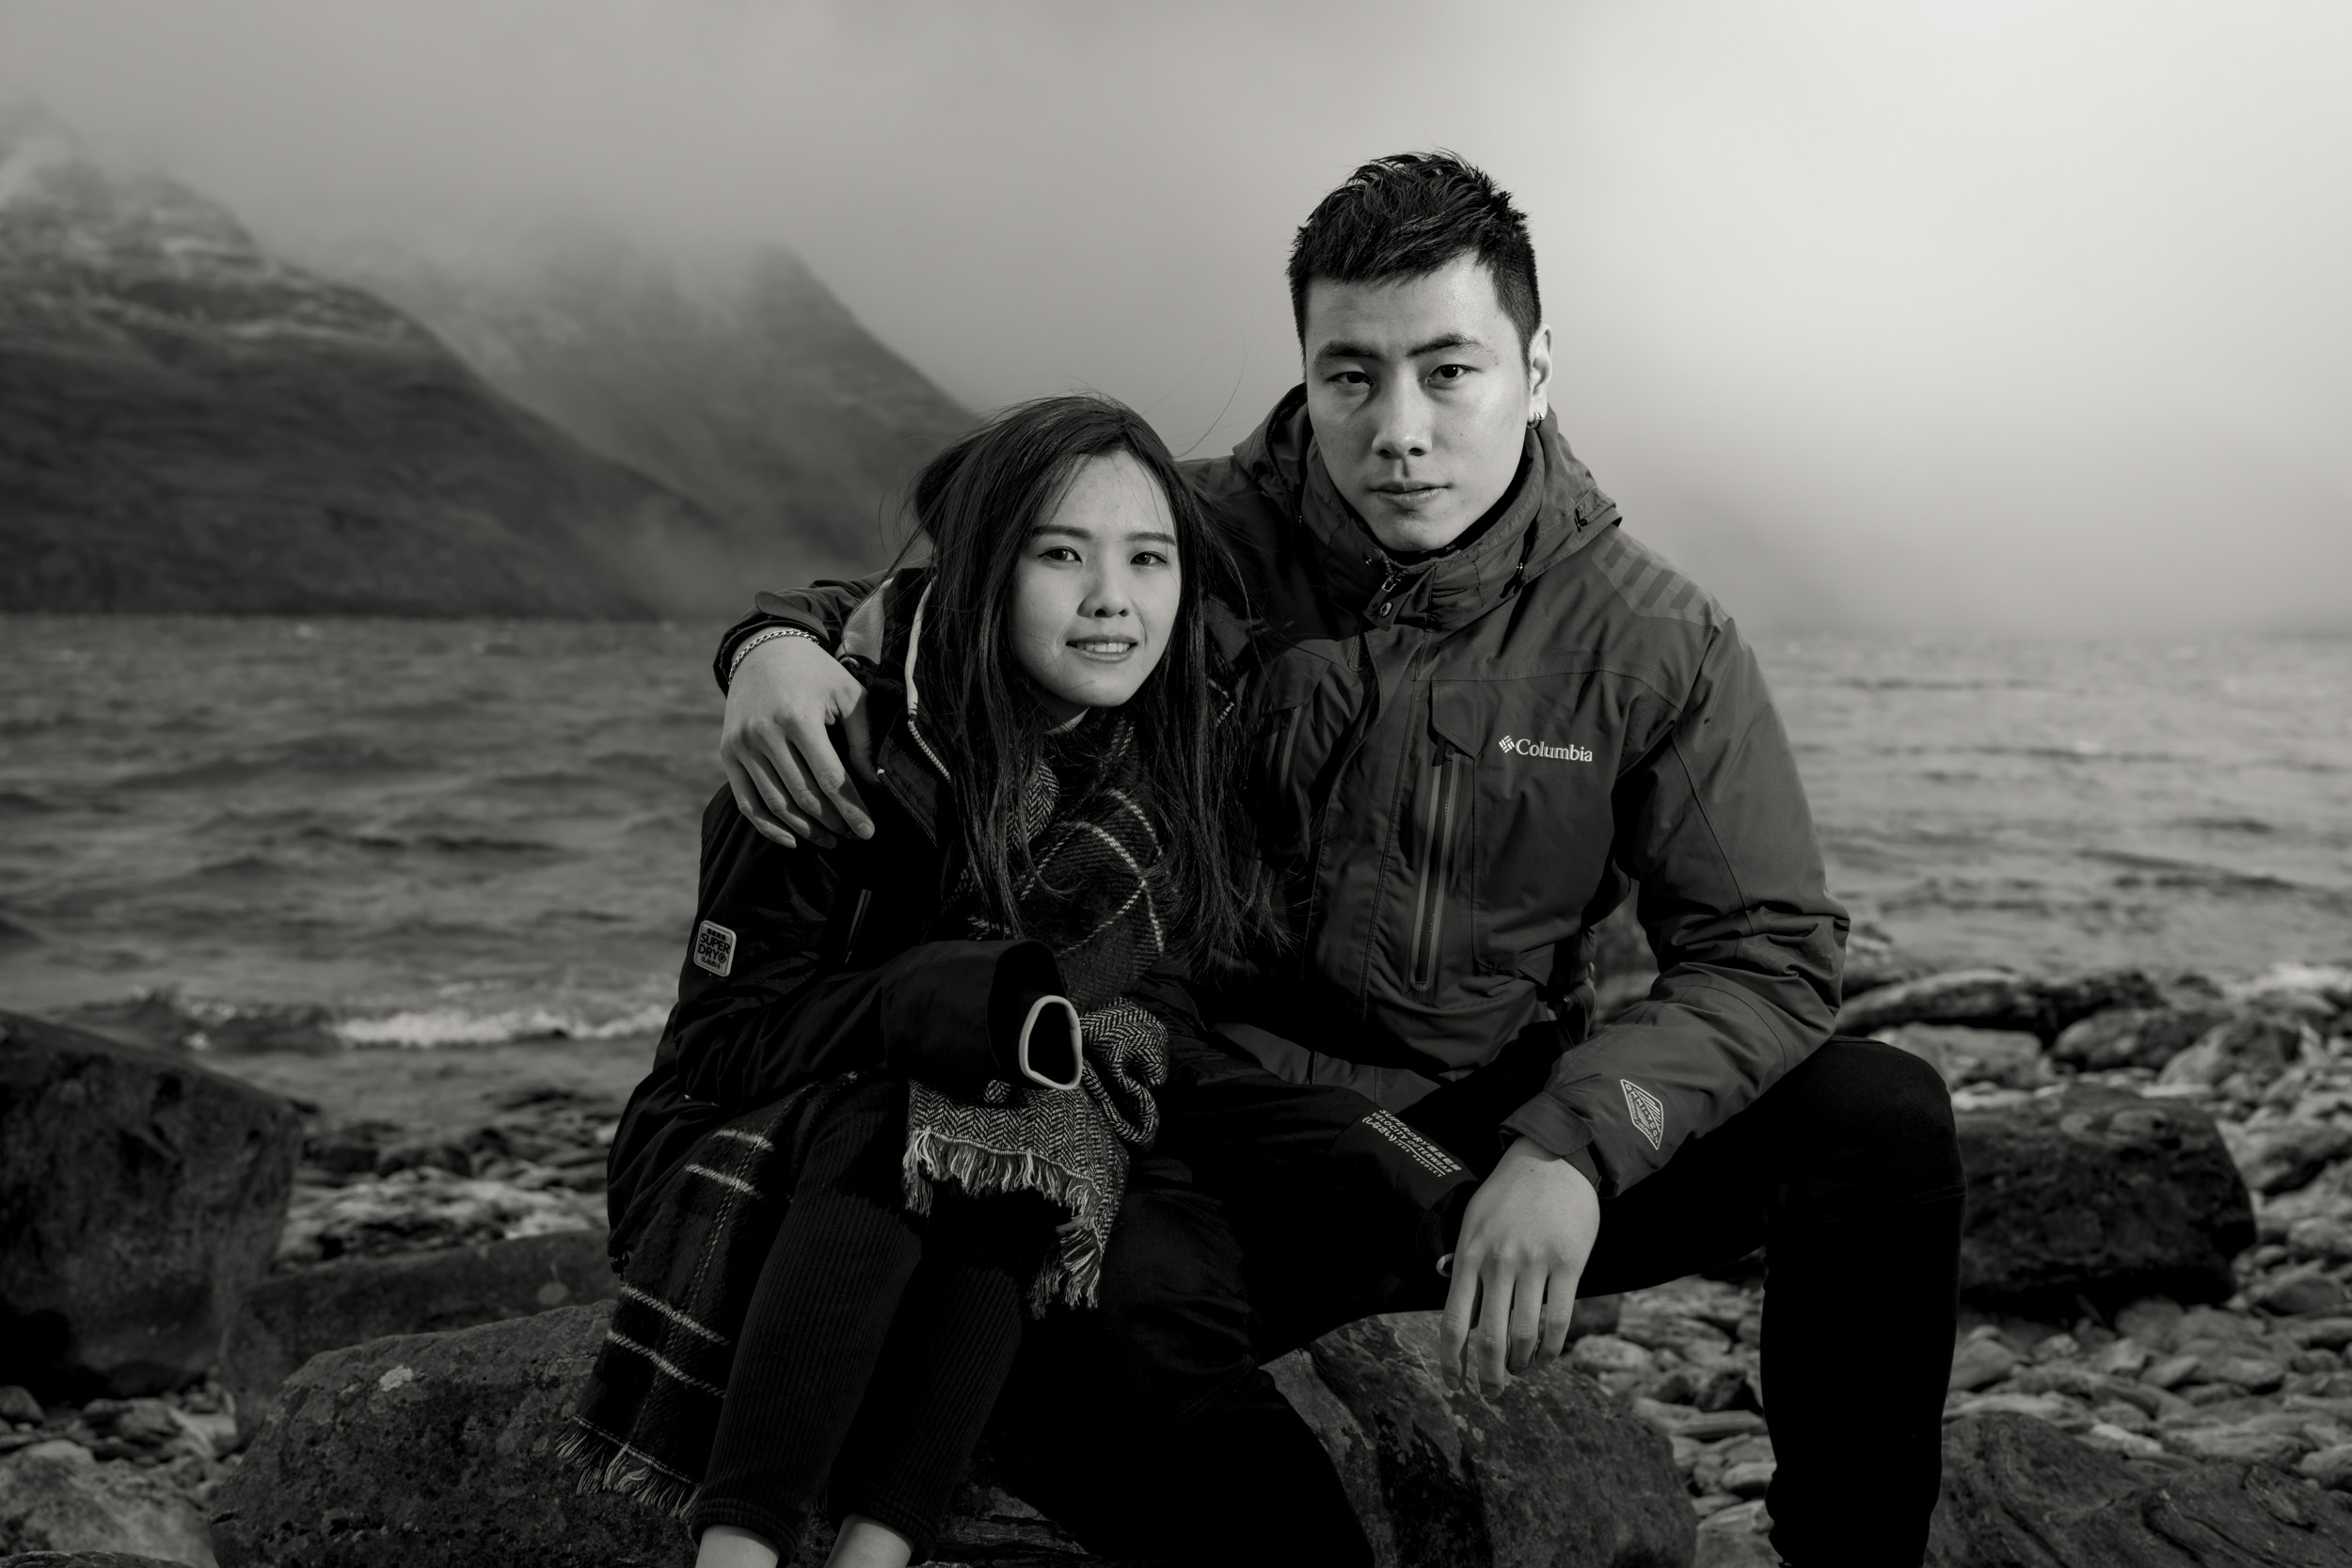 Professional Travel Portrait Sessions on Location in Queenstown NZ